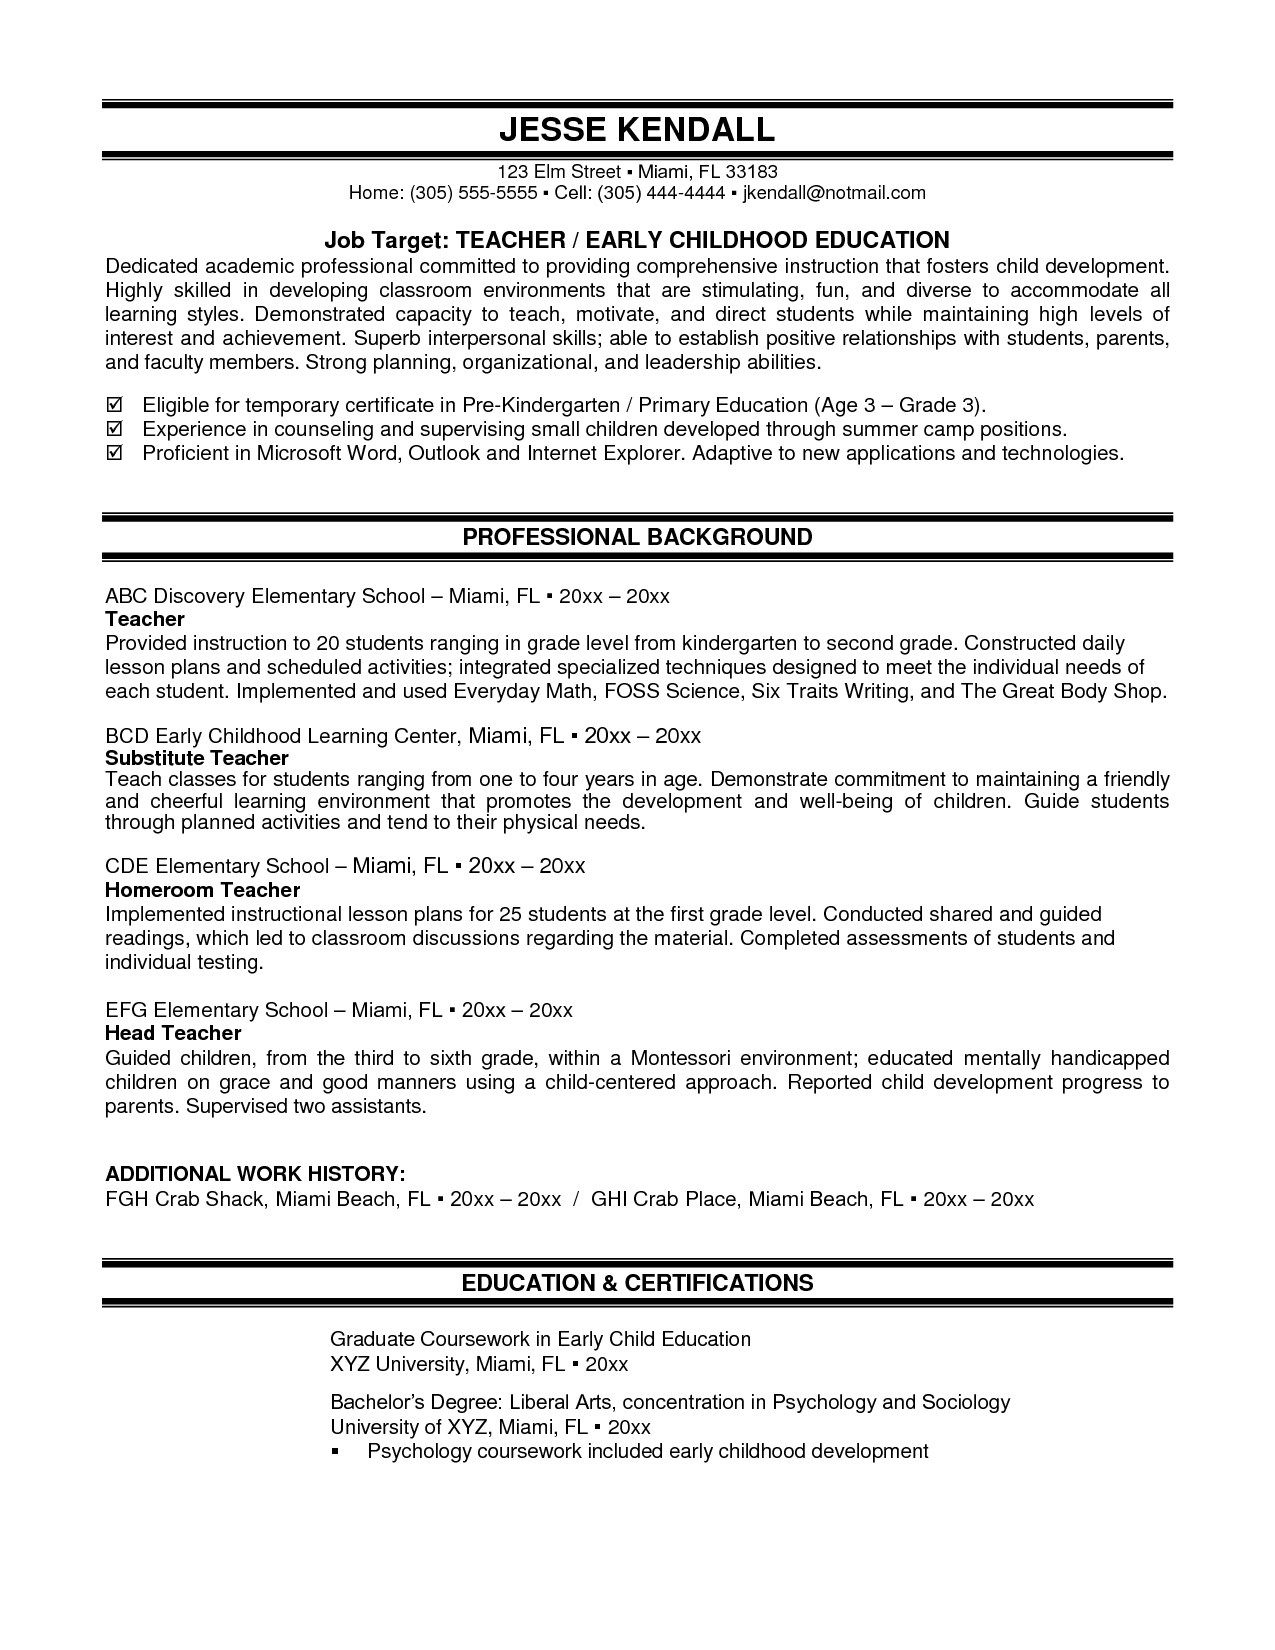 Private Music Teacher Resume Sample - http://ersume.com/private ...